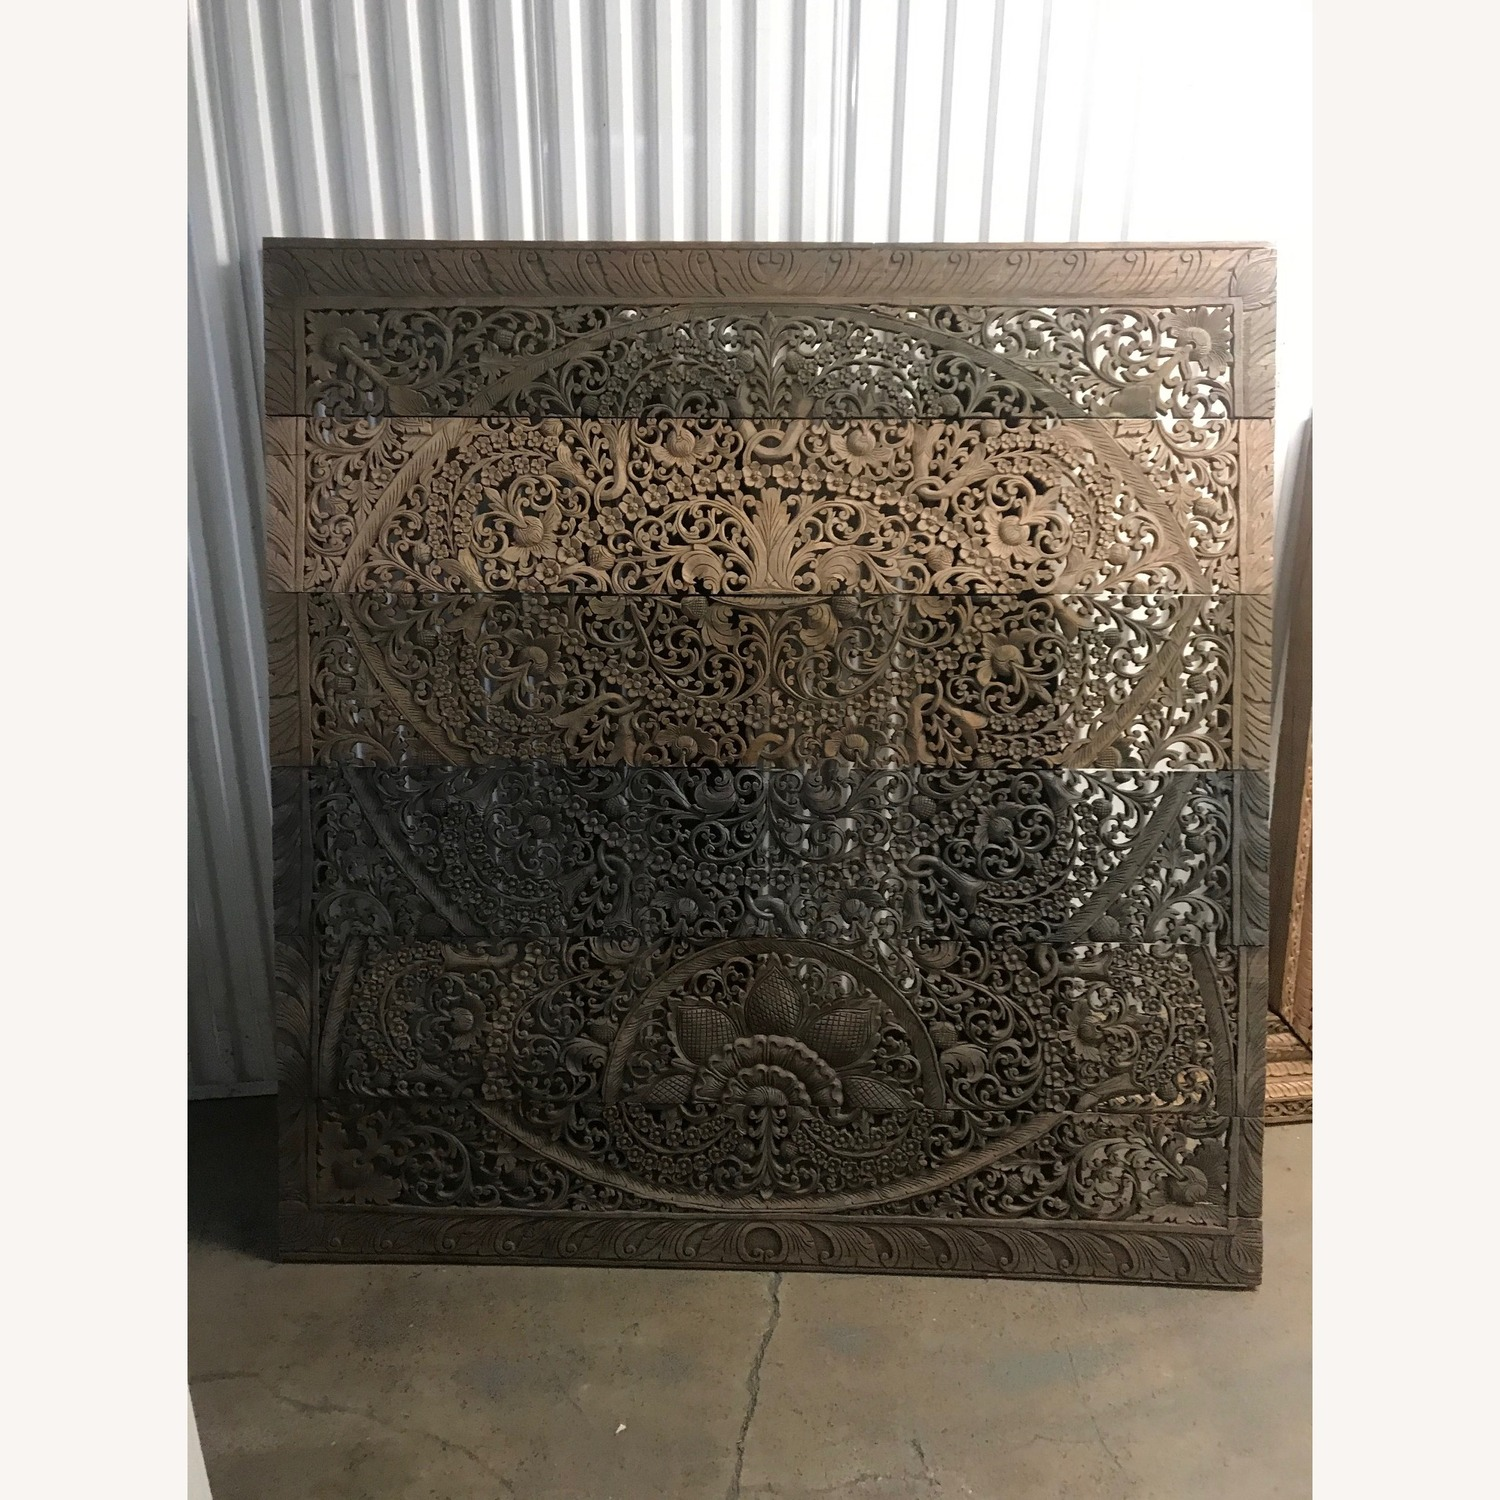 Burmese Wooden Wall Panel Carving